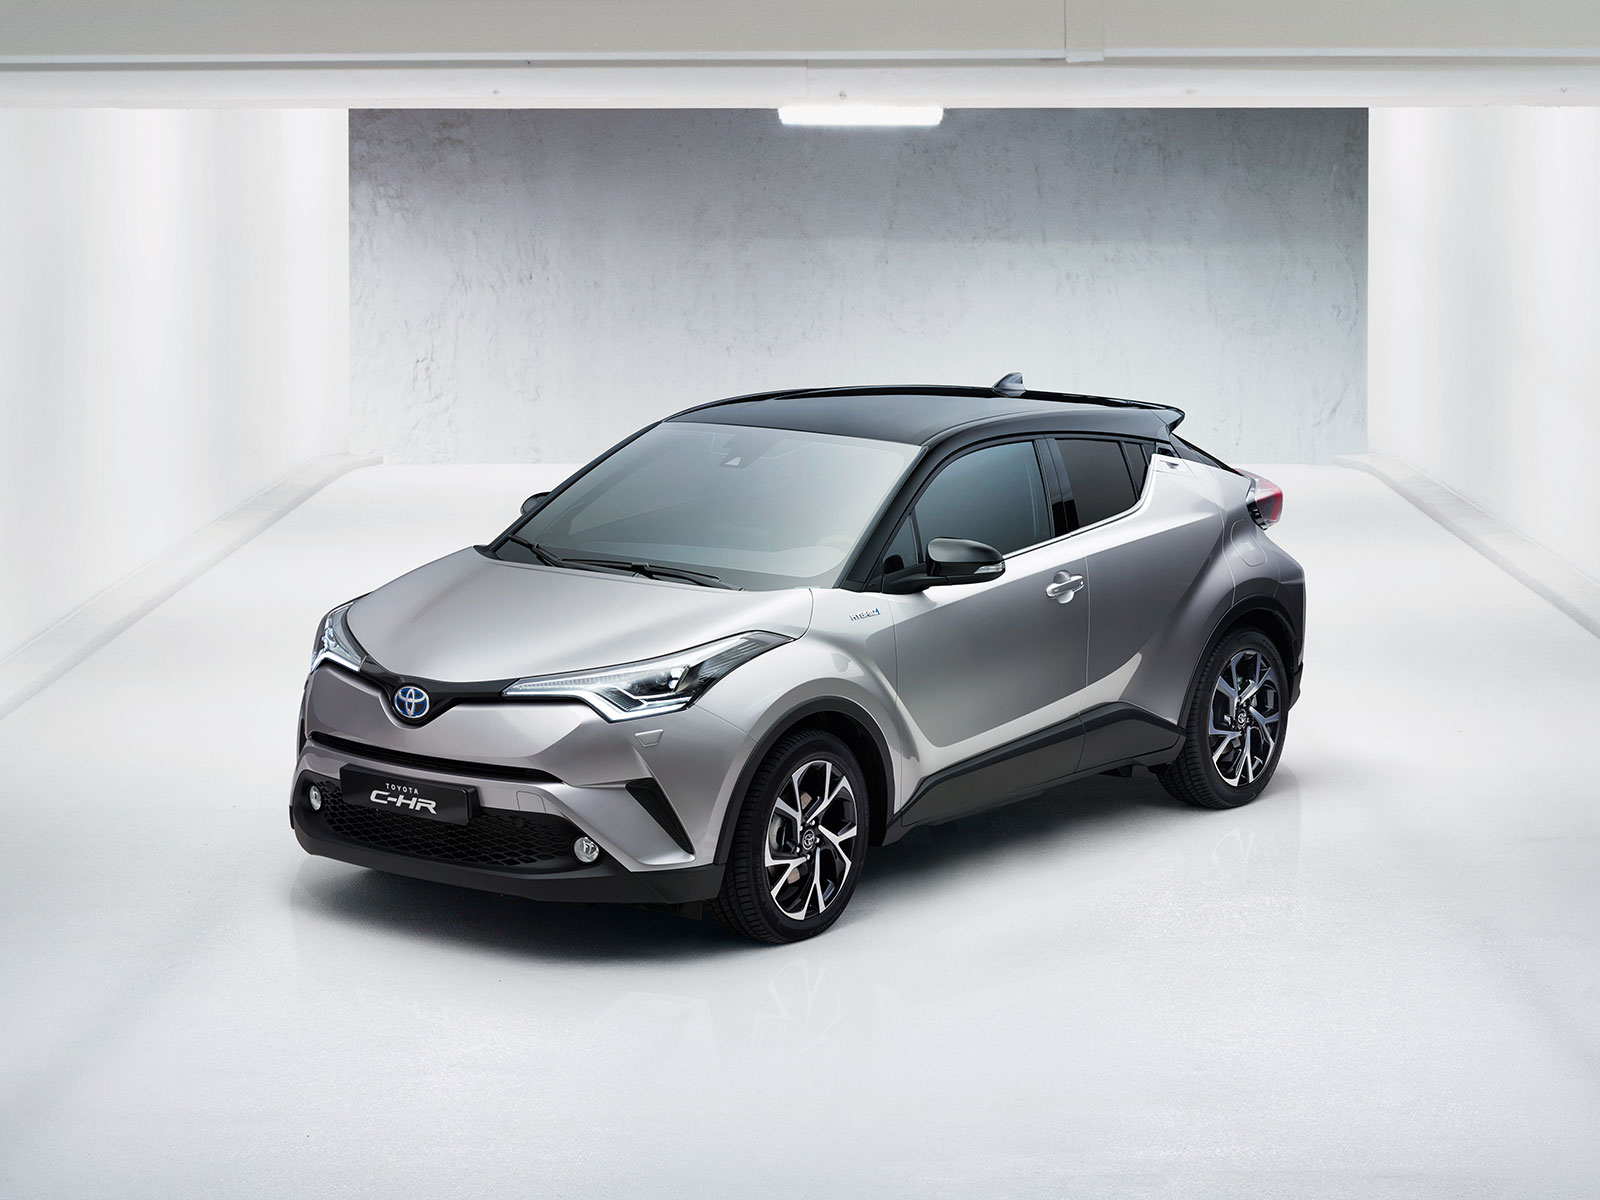 Is the New C-HR for you?